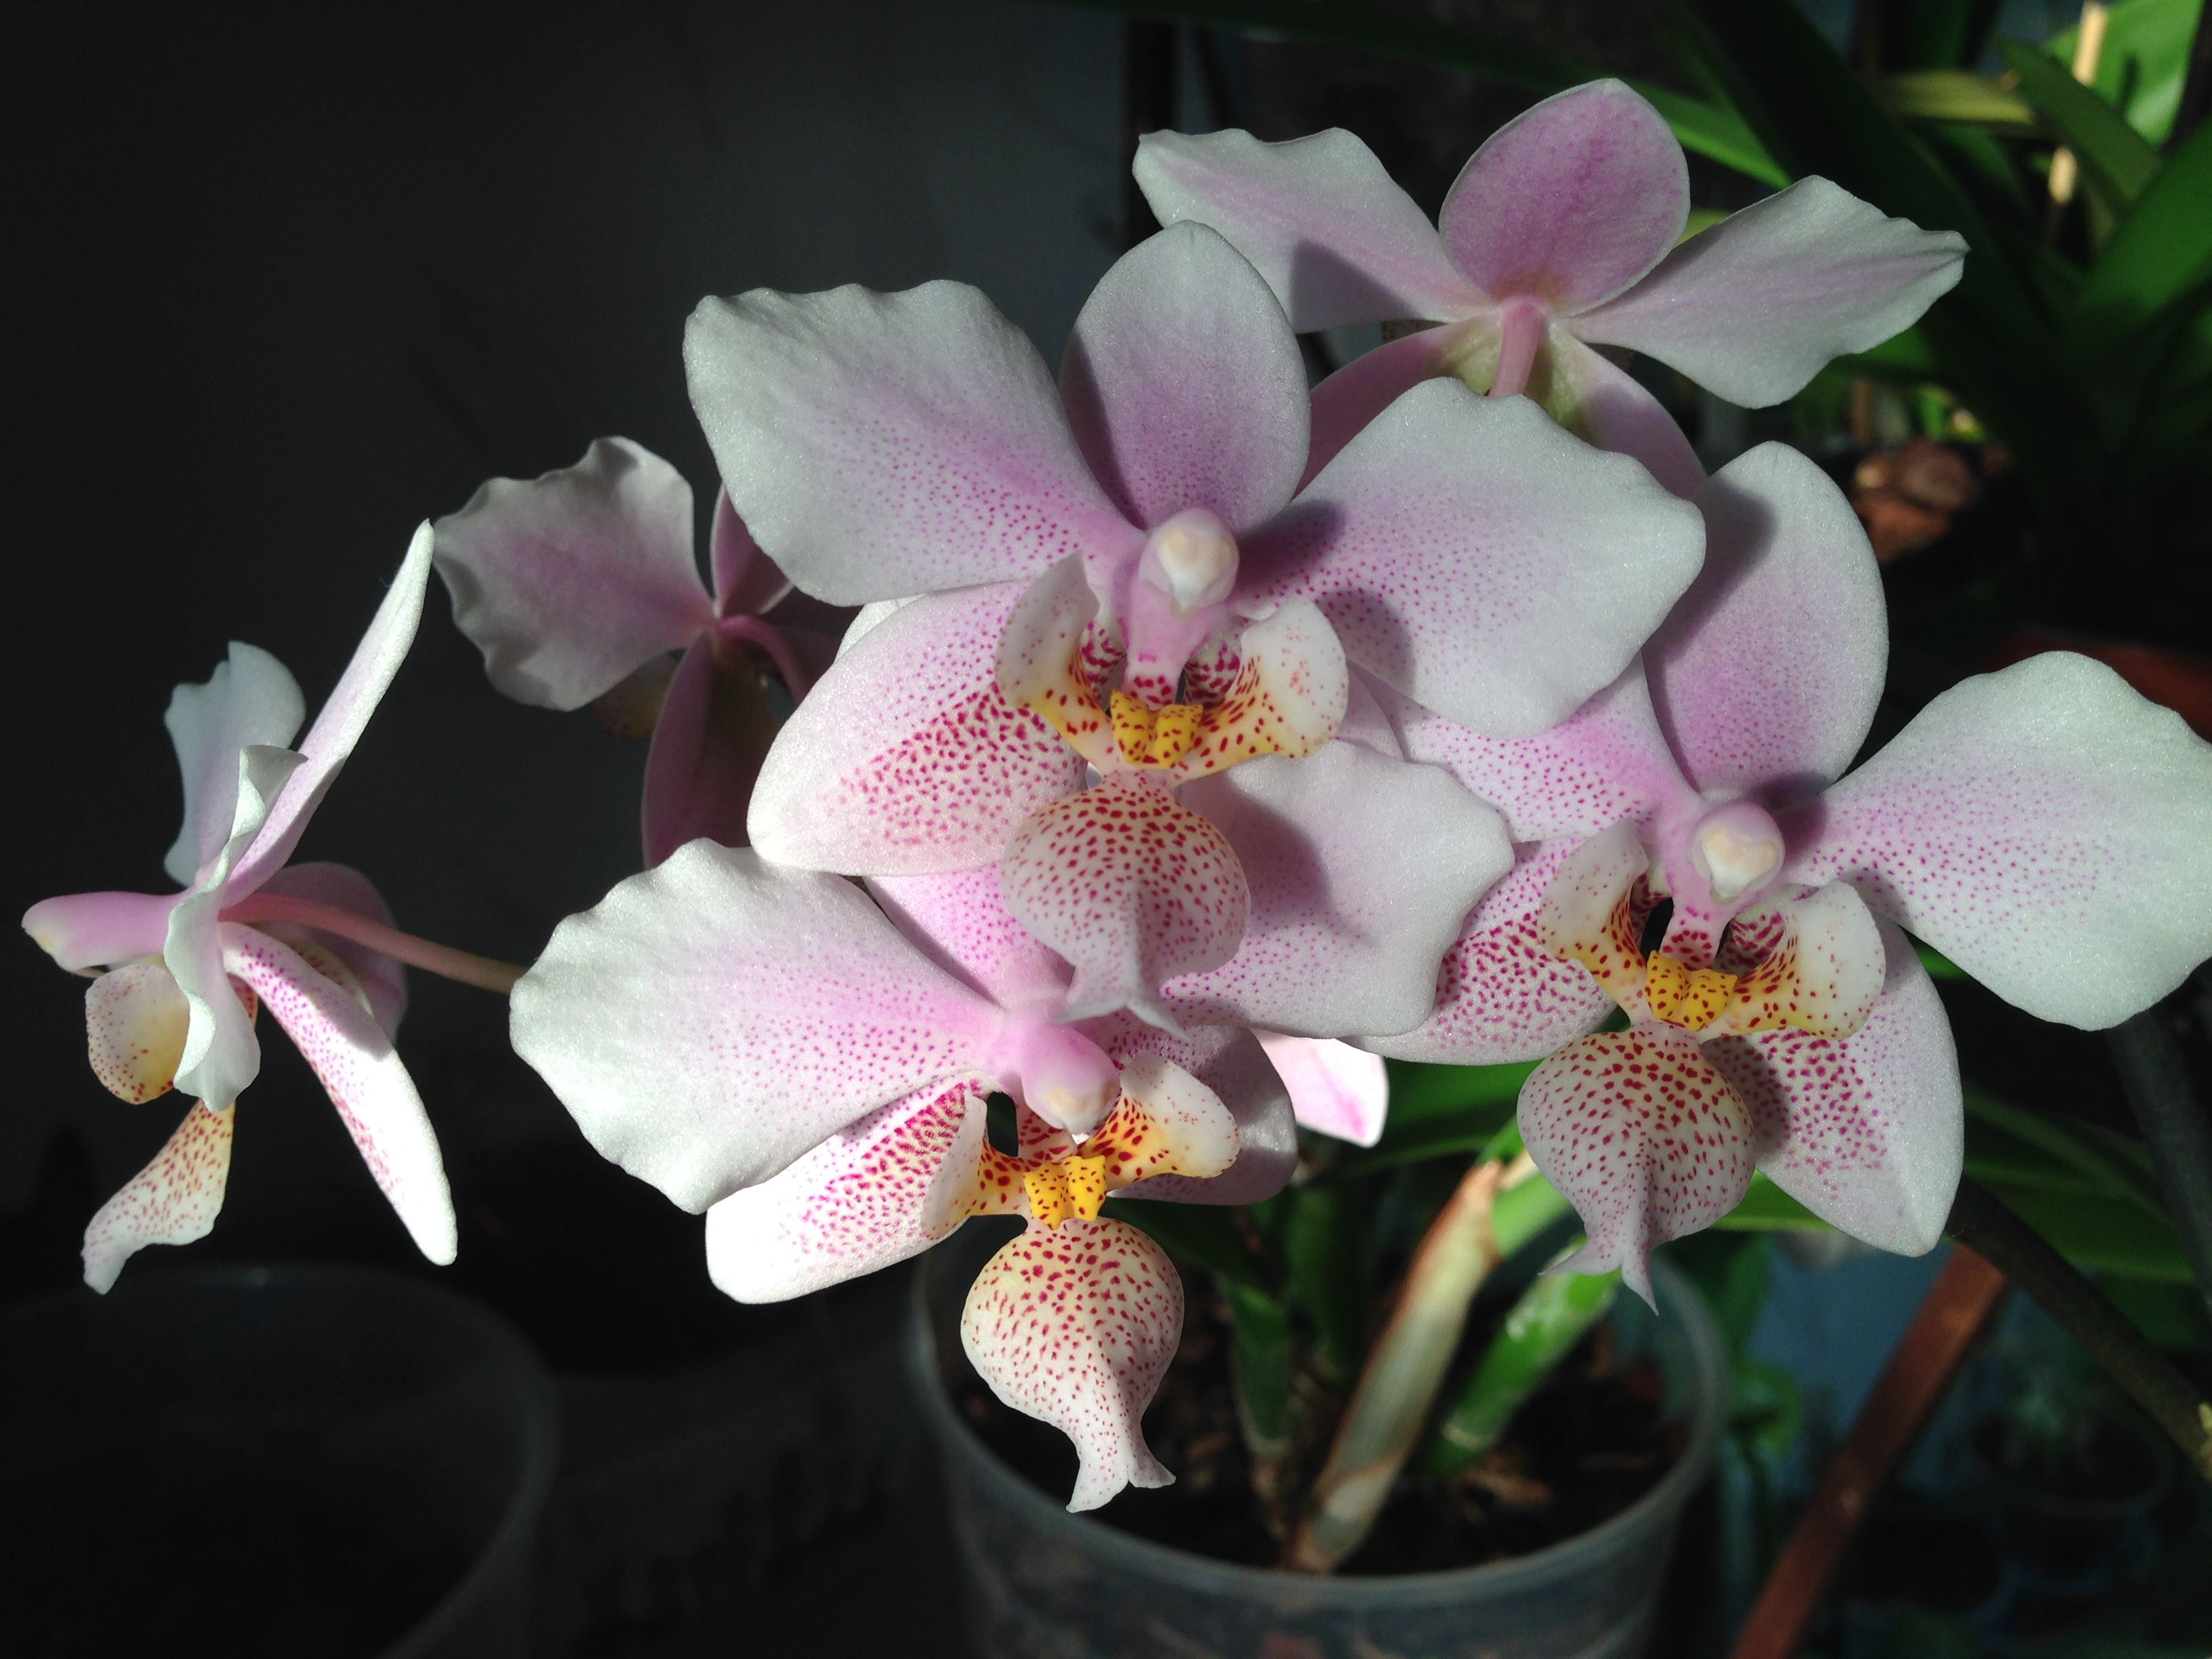 propagation of phalaenopnis orchids with cytokinin Successfully propagating orchids the simplest method is vegetative propagation using parts of a growing plant with this method, the offspring will be exact replicas of the parent plant.